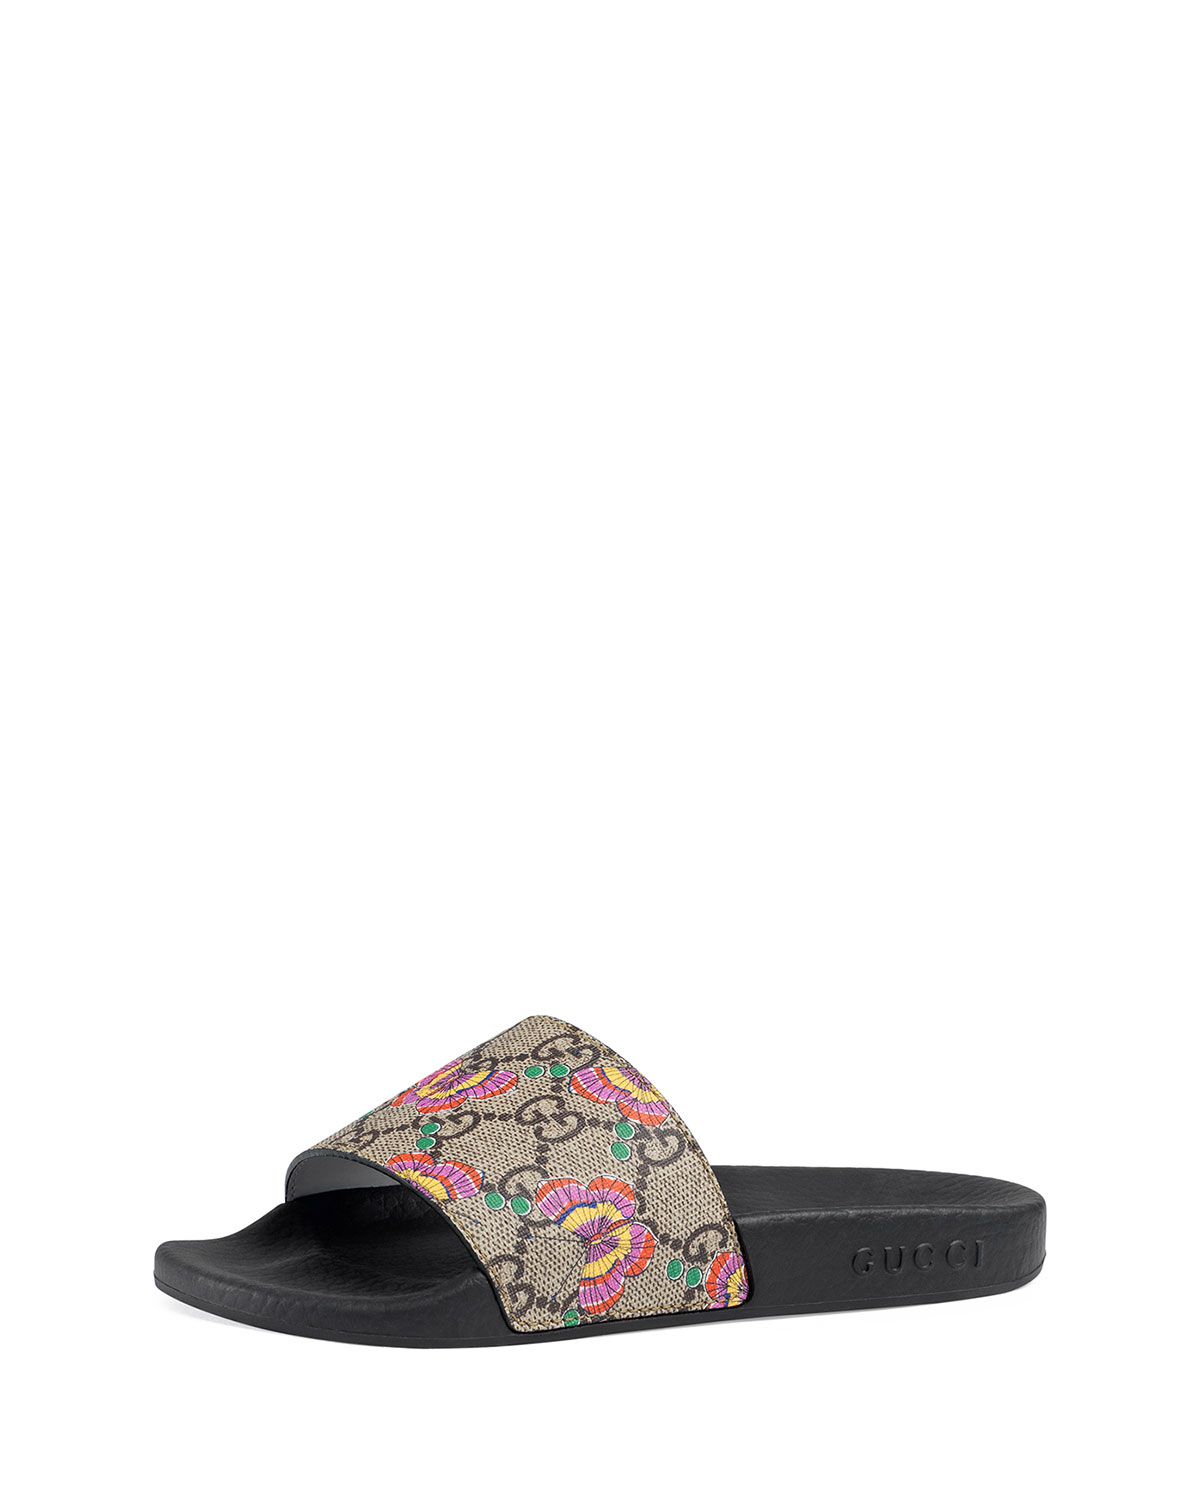 3f87aeef3 Gucci Pursuit Butterfly-Print GG Supreme Slide Sandals